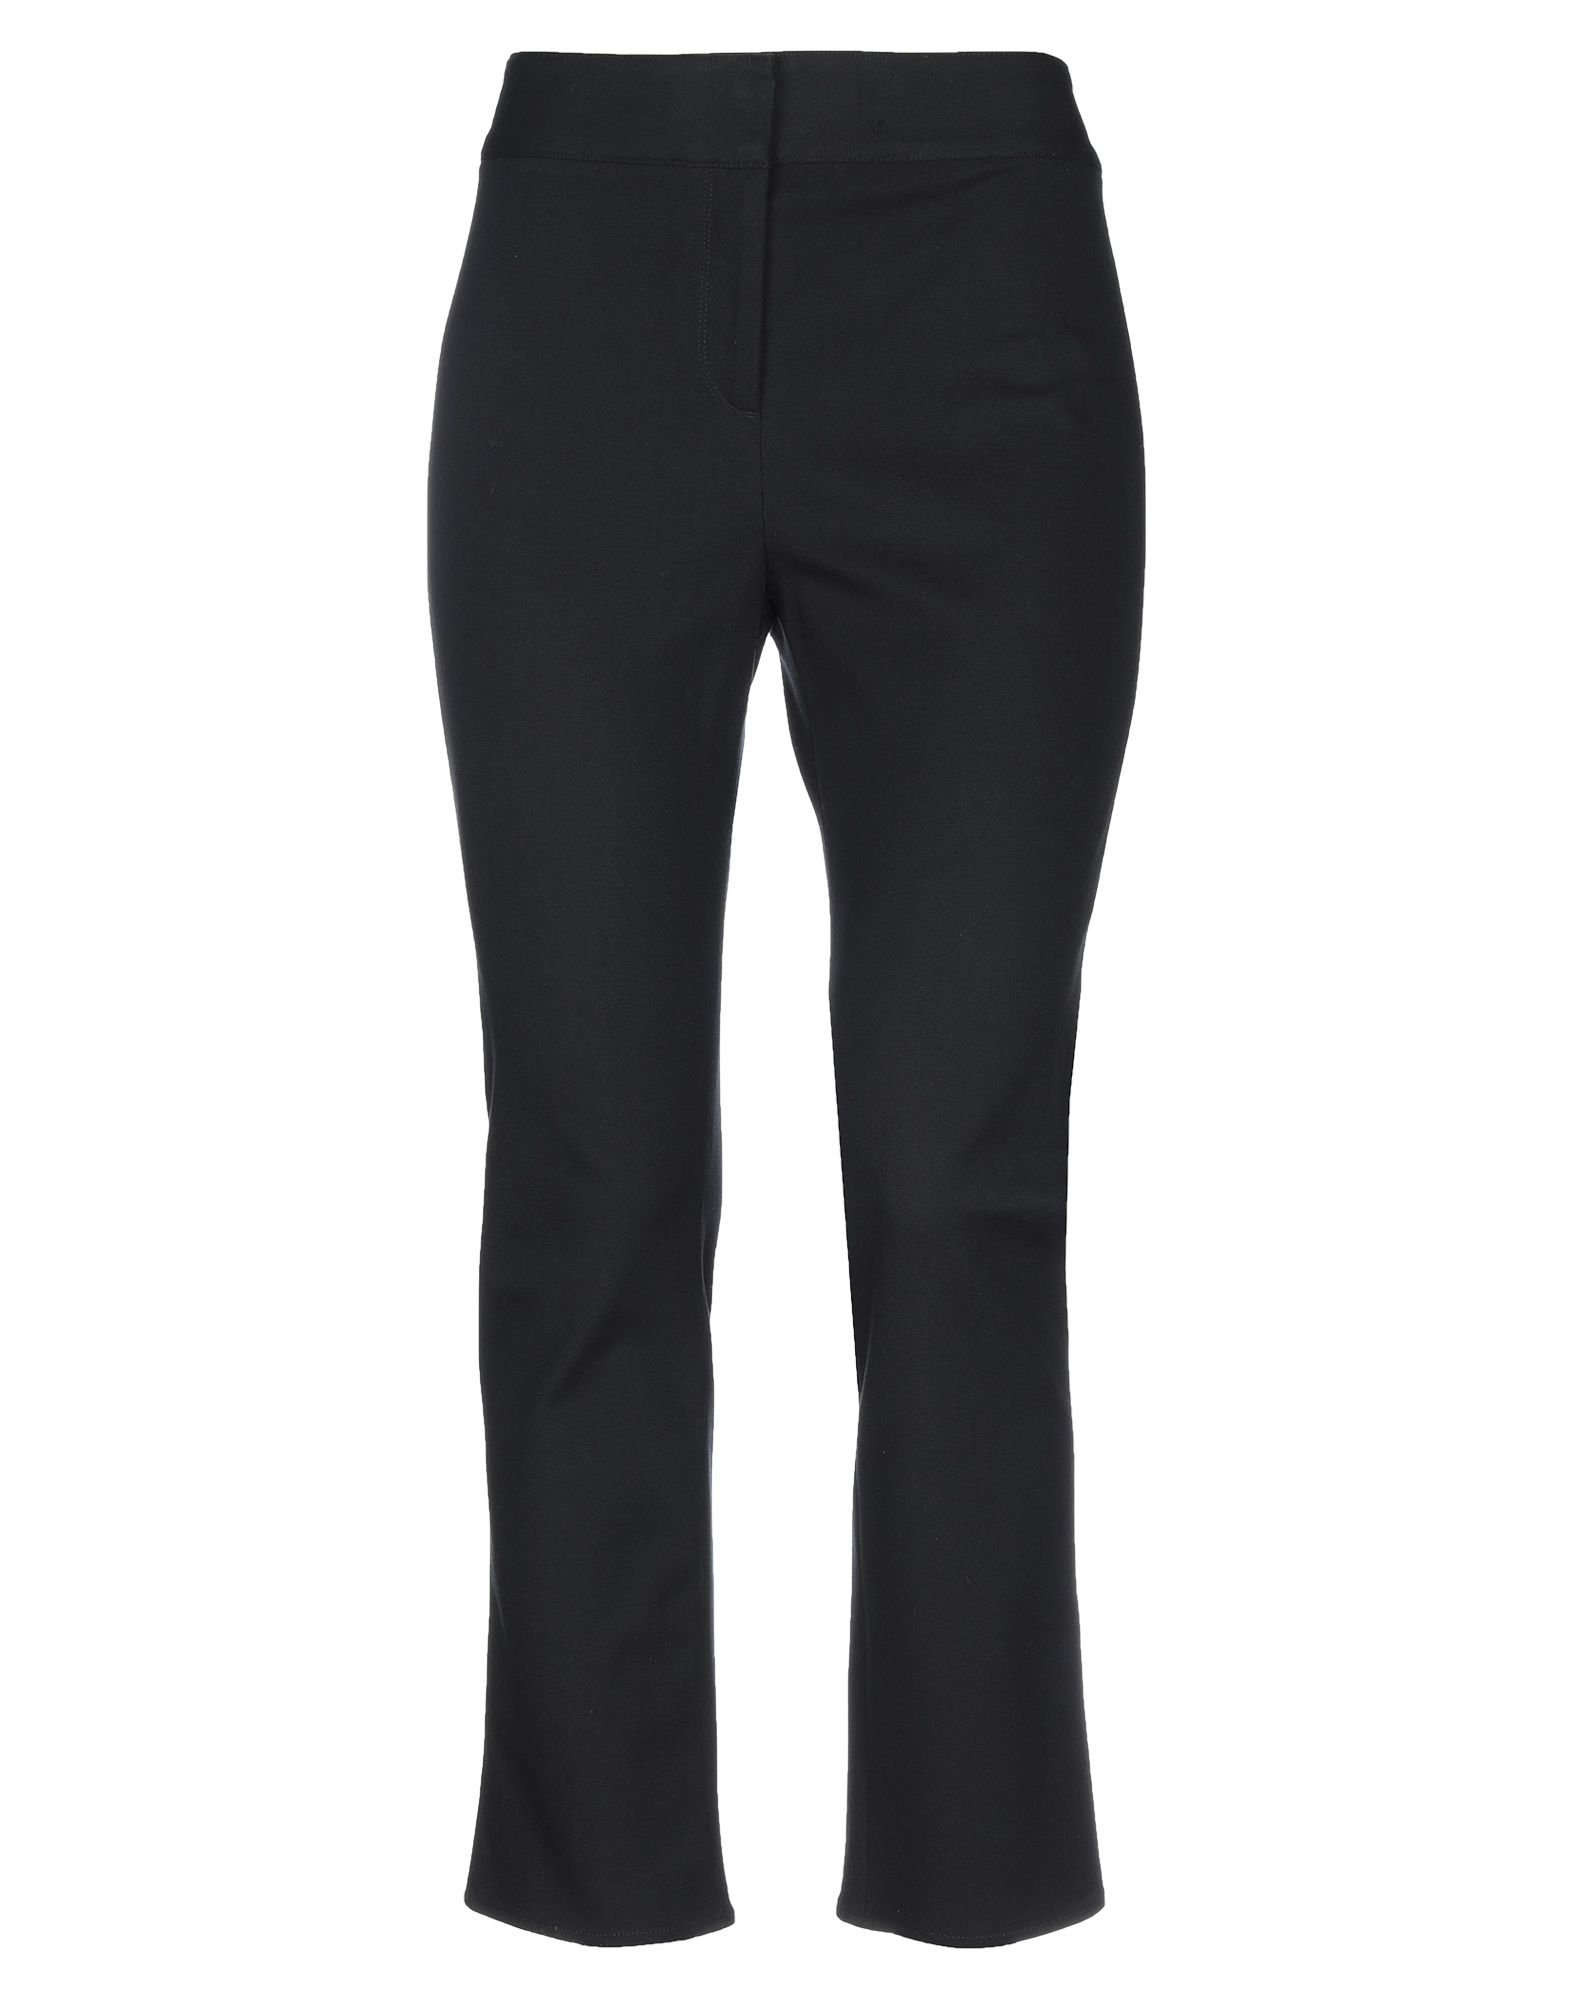 VERONICA BEARD Casual pants. plain weave, no appliqués, solid color, high waisted, regular fit, straight leg, hook-and-bar, zip, multipockets, stretch. 96% Cotton, 4% Elastane